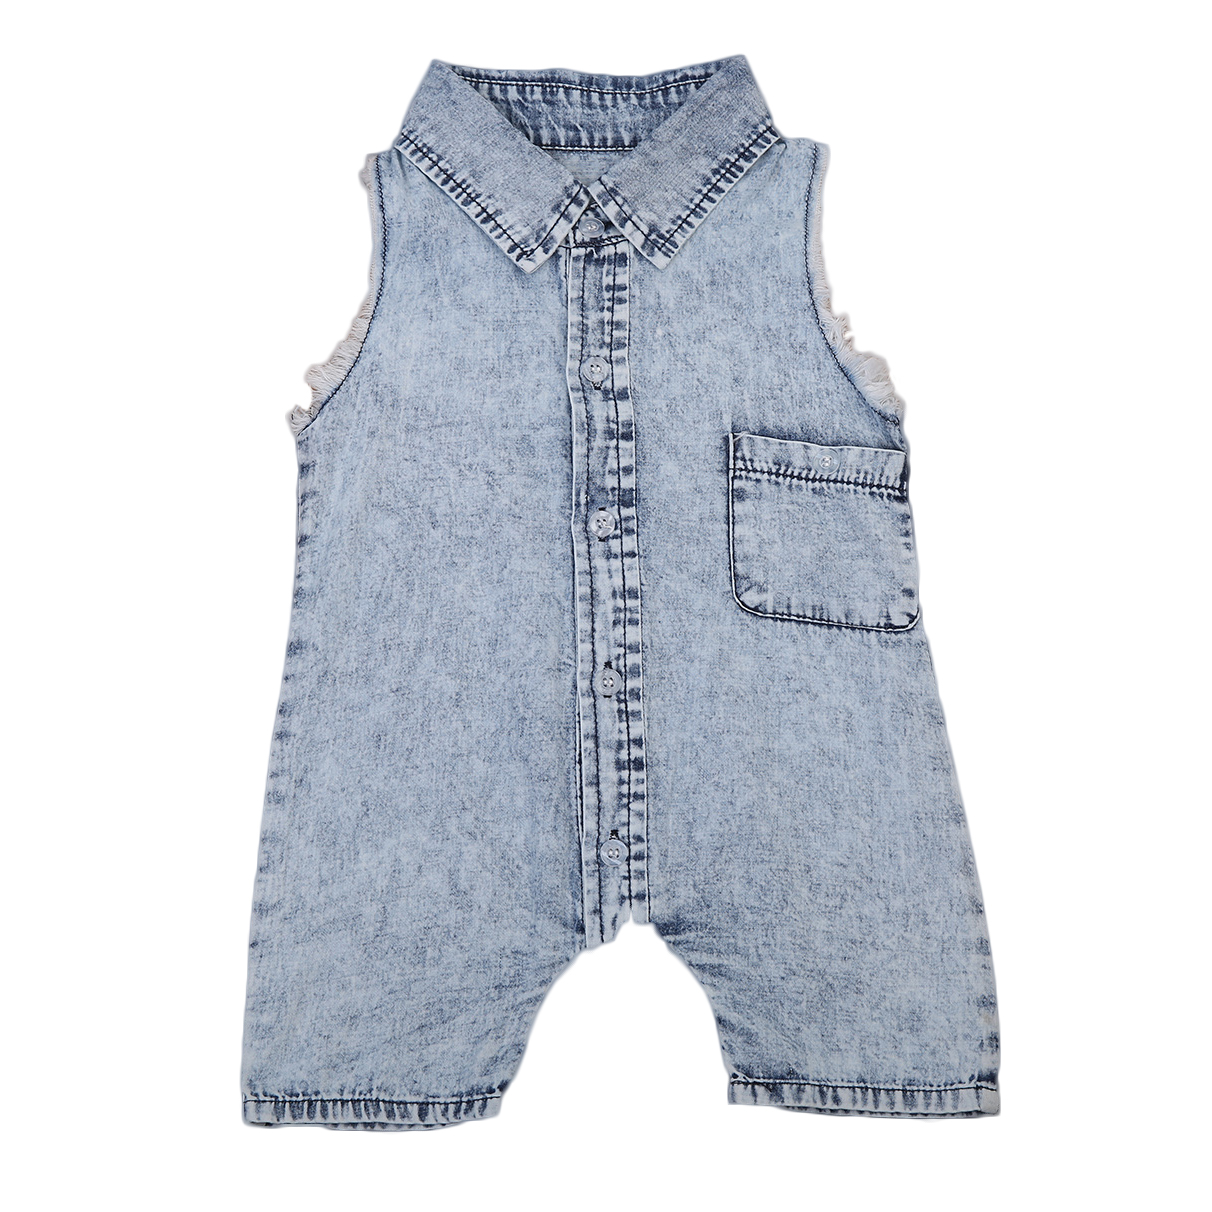 Shop our range of Baby Rompers. Shop our range of Baby Rompers & Bodysuits from premium brands online at David Jones. Free delivery available.